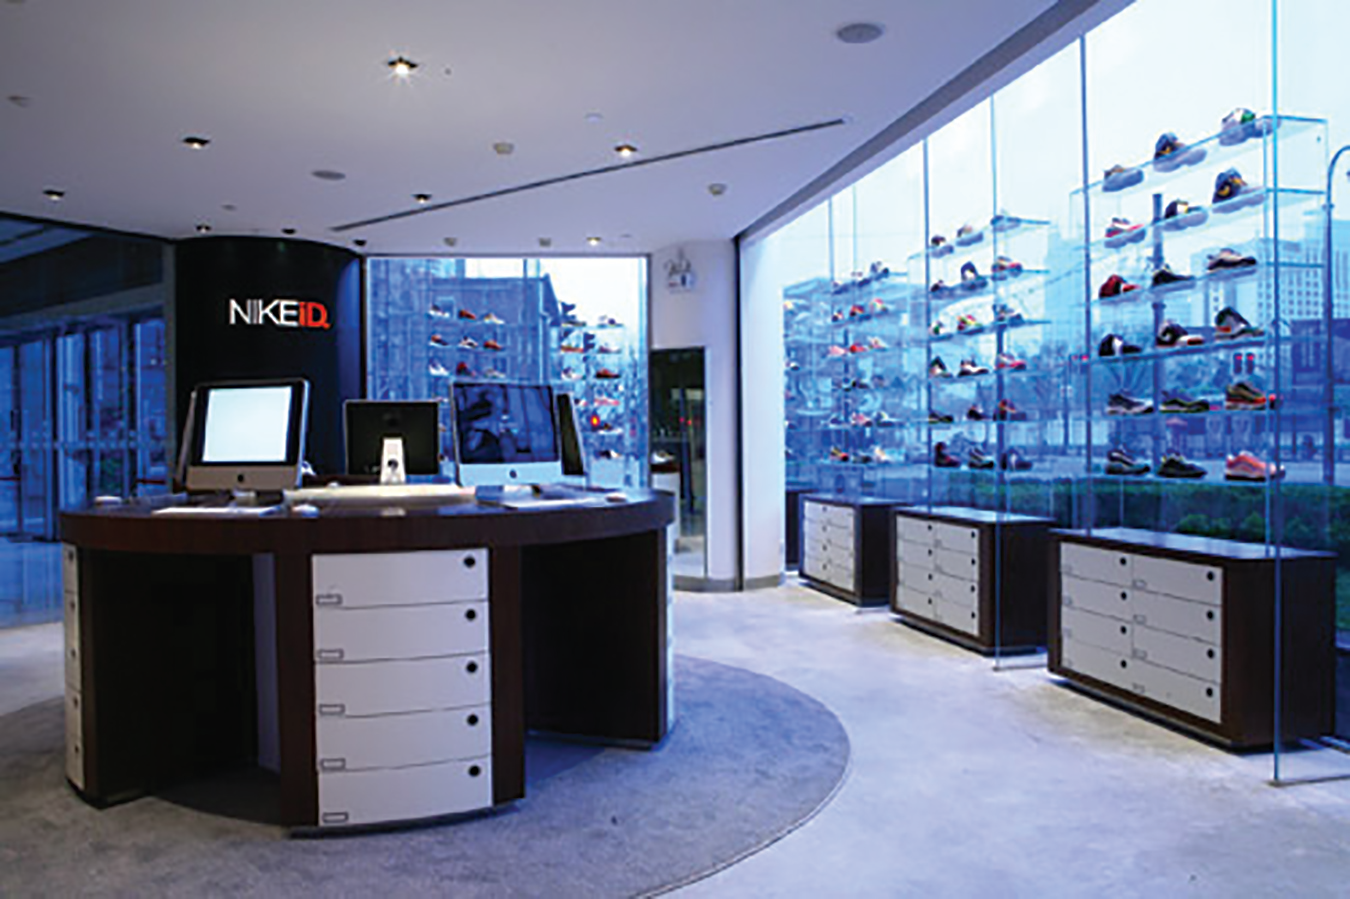 A picture of the inside of a NIKEiD store showing shoes on shelves by glass windows with a view of many tall buildings.